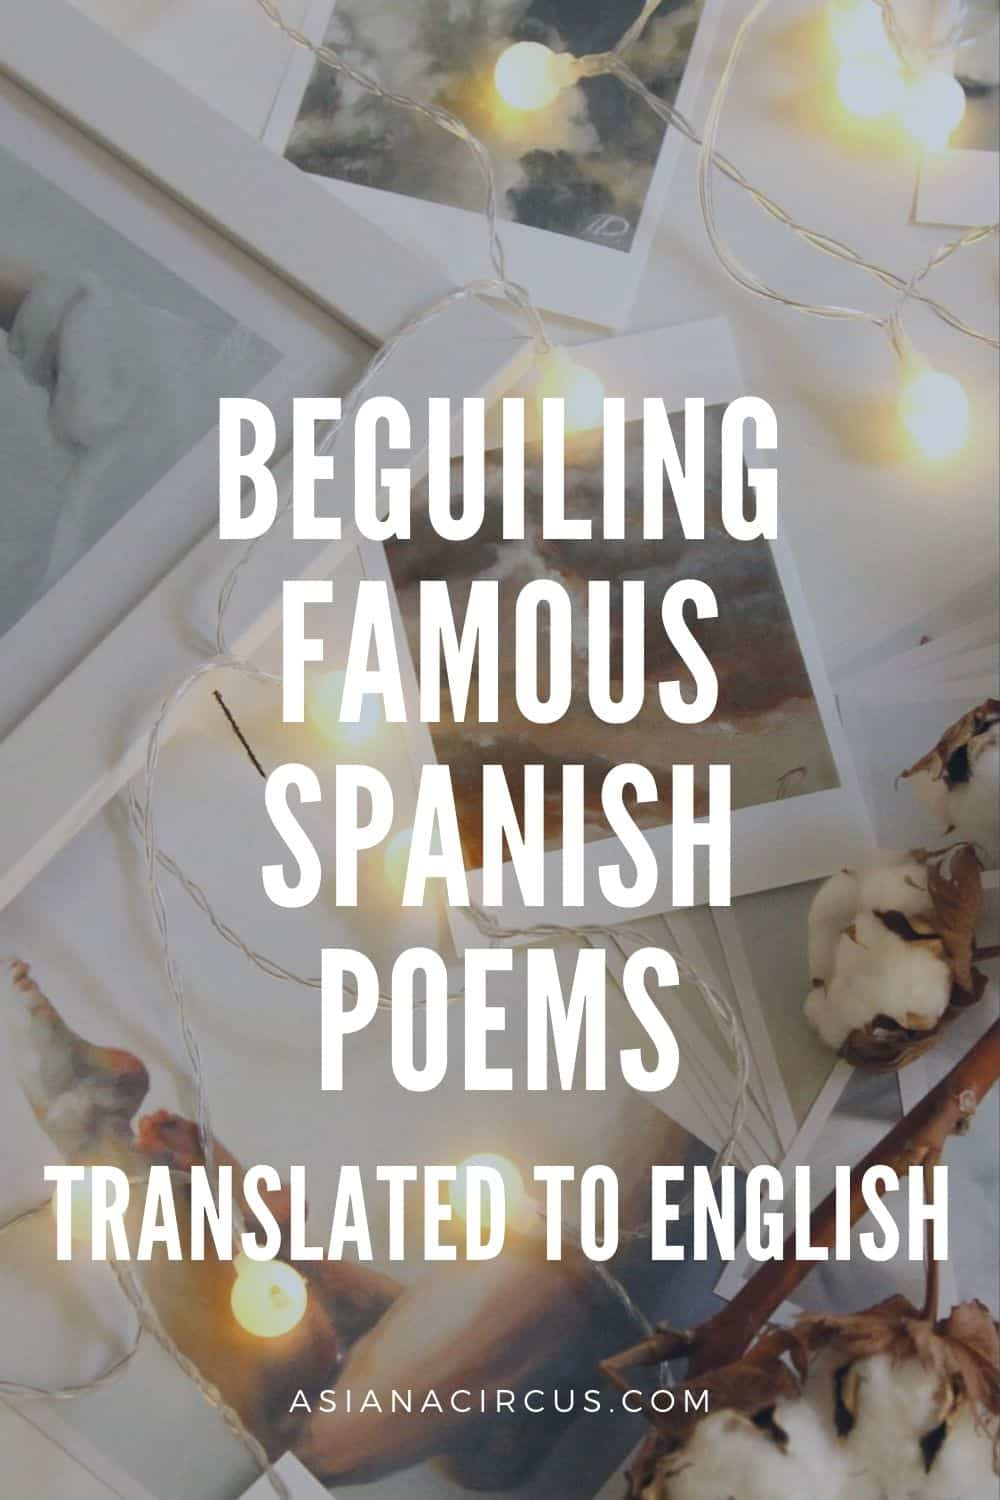 10 Beguiling Famous Spanish Poems Translated to English